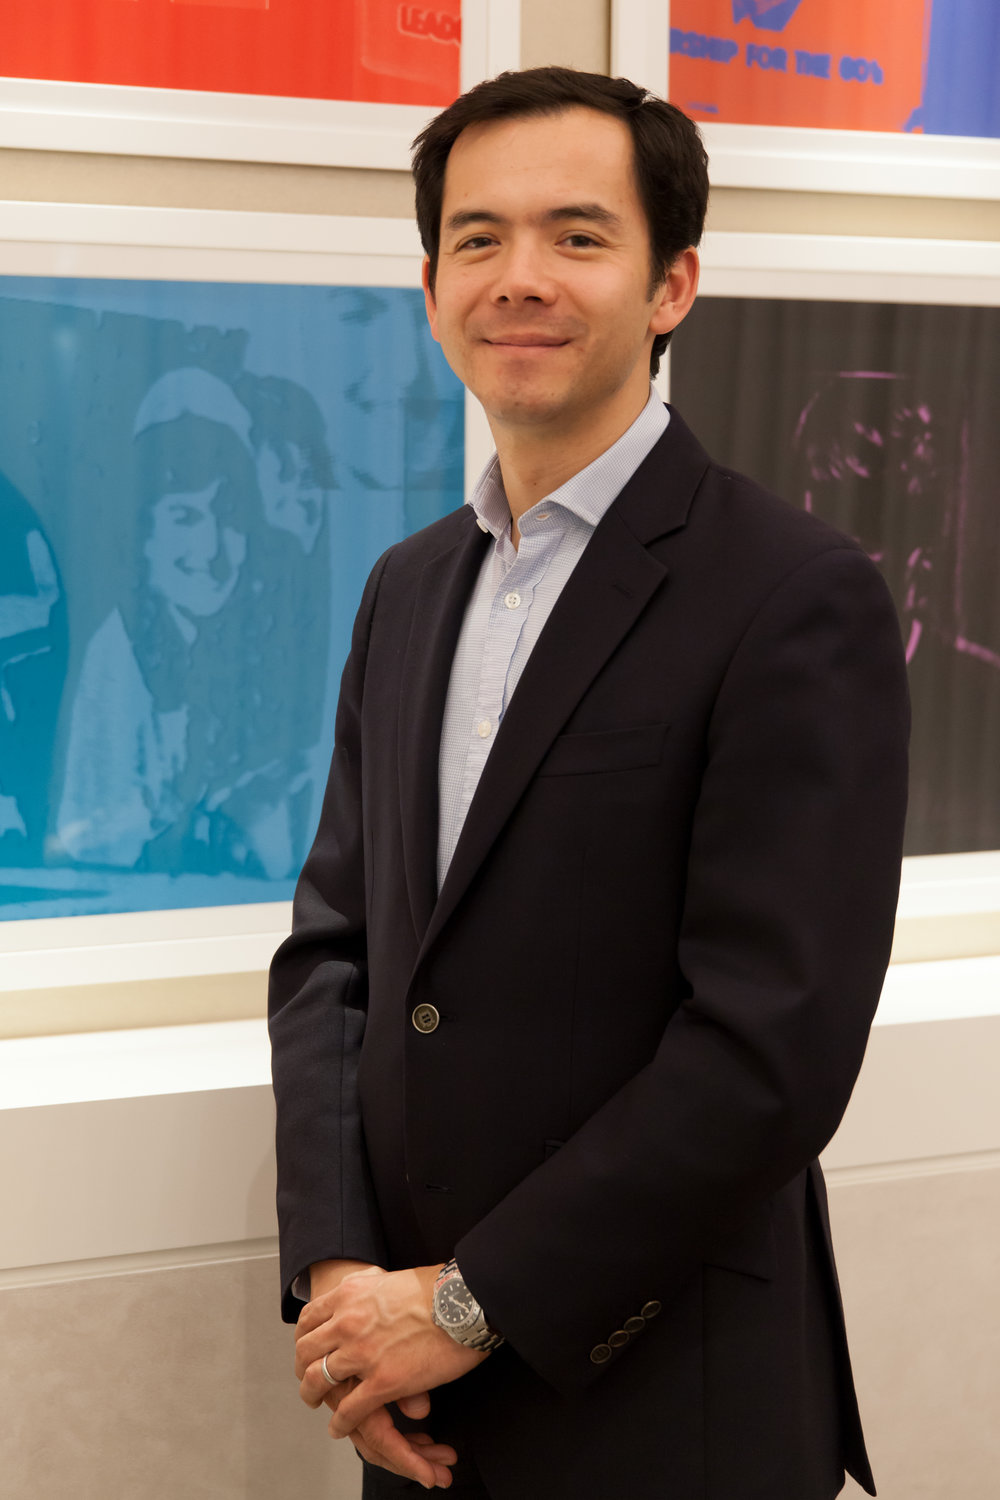 ARNAUD CHEUNG    Managing Director   Arnaud began his career at Hamptons International and CBRE, building his extensive experience in residential lettings and the institutional rented sector. He specialises in advising investors and operators, development consultancy, serviced apartment appraisals, and serviced apartment and apart-hotel acquisitions and disposals. In 2004, Arnaud co-founded Domus Nova, a boutique estate agency for design-led properties of architectural interest throughout prime London. Arnaud now brings his extensive experience to Saxbury.